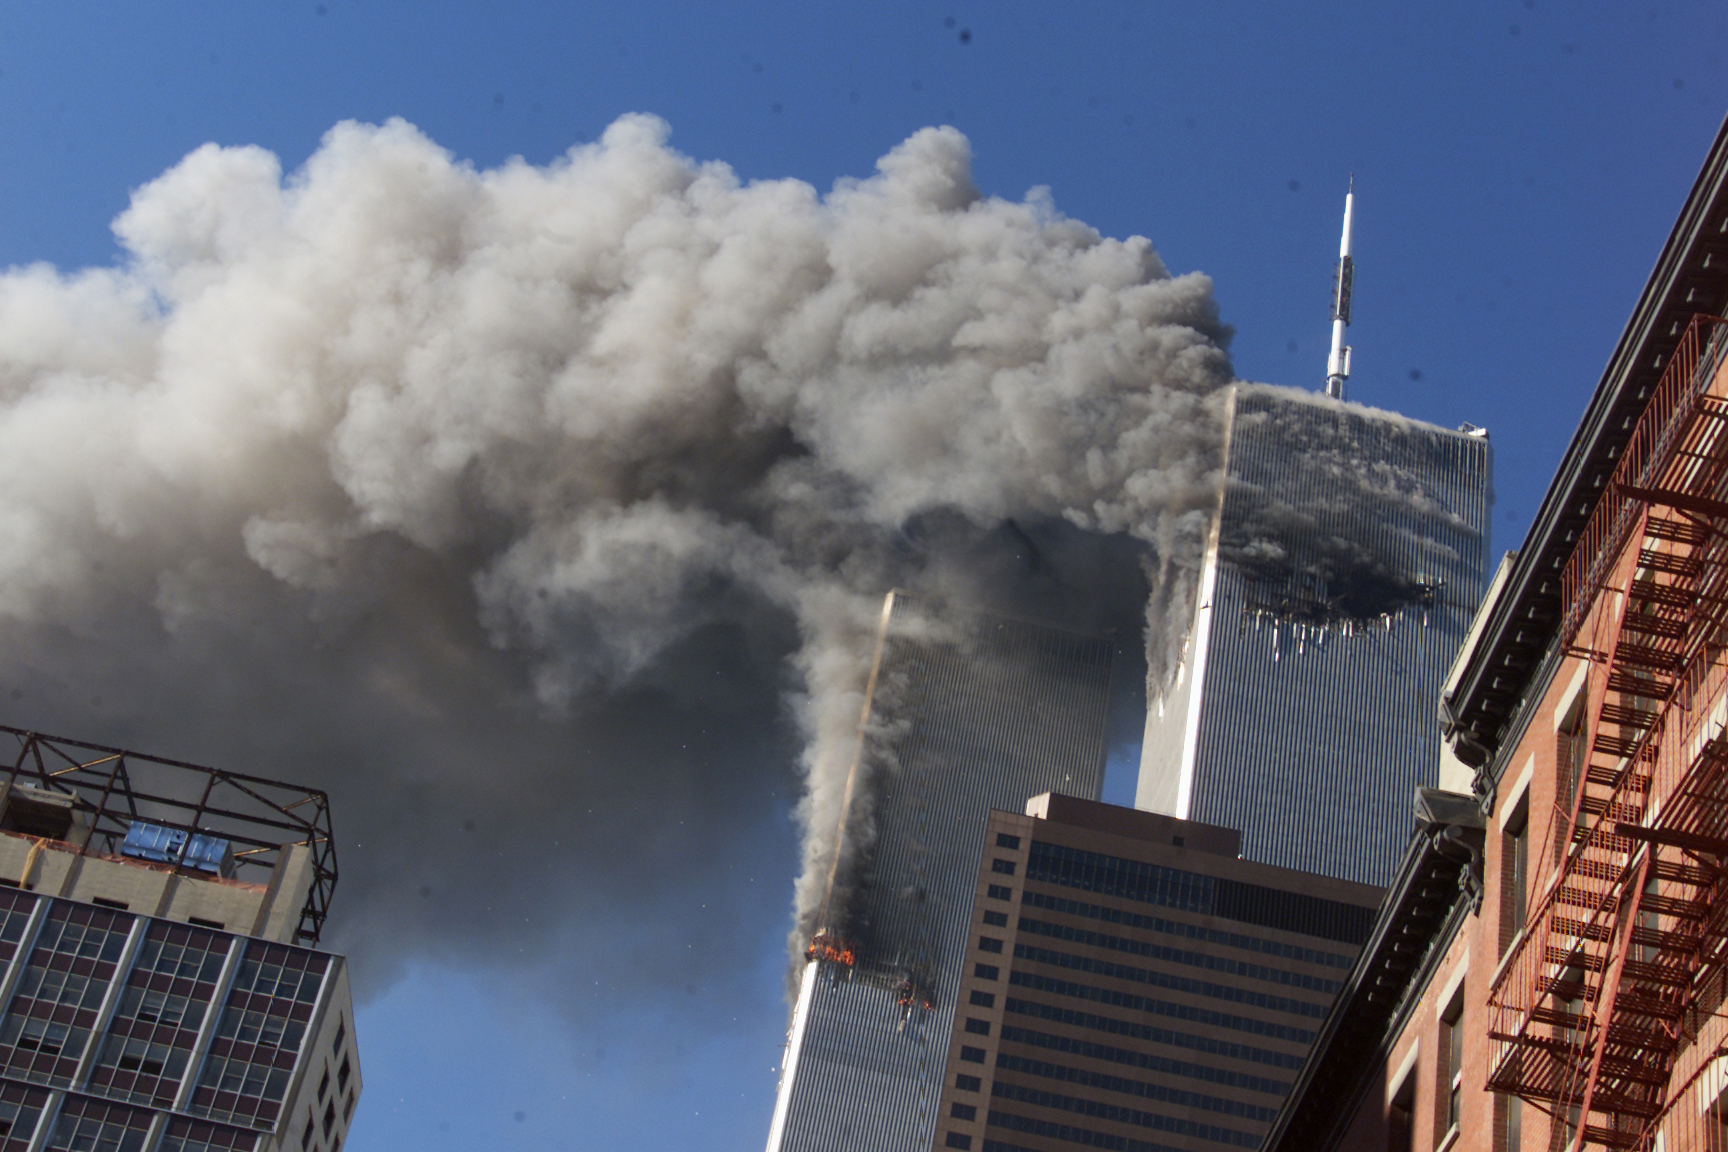 FILE - In this Sept. 11, 2001 file photo, smoke rising from the burning twin towers of the World Trade Center after hijacked planes crashed into the towers, in New York City. Every American of a certain age has a 9/11 story _ vivid memories of where they were, what they saw, how they felt on that awful day. Donald Trump is one of them. And for New Yorkers like him, 9/11 melds first-hand experience with what they felt in their guts, what they saw on television and what was playing out in the lives of friends and loved ones in a city under siege.  (AP Photo/Richard Drew, File)